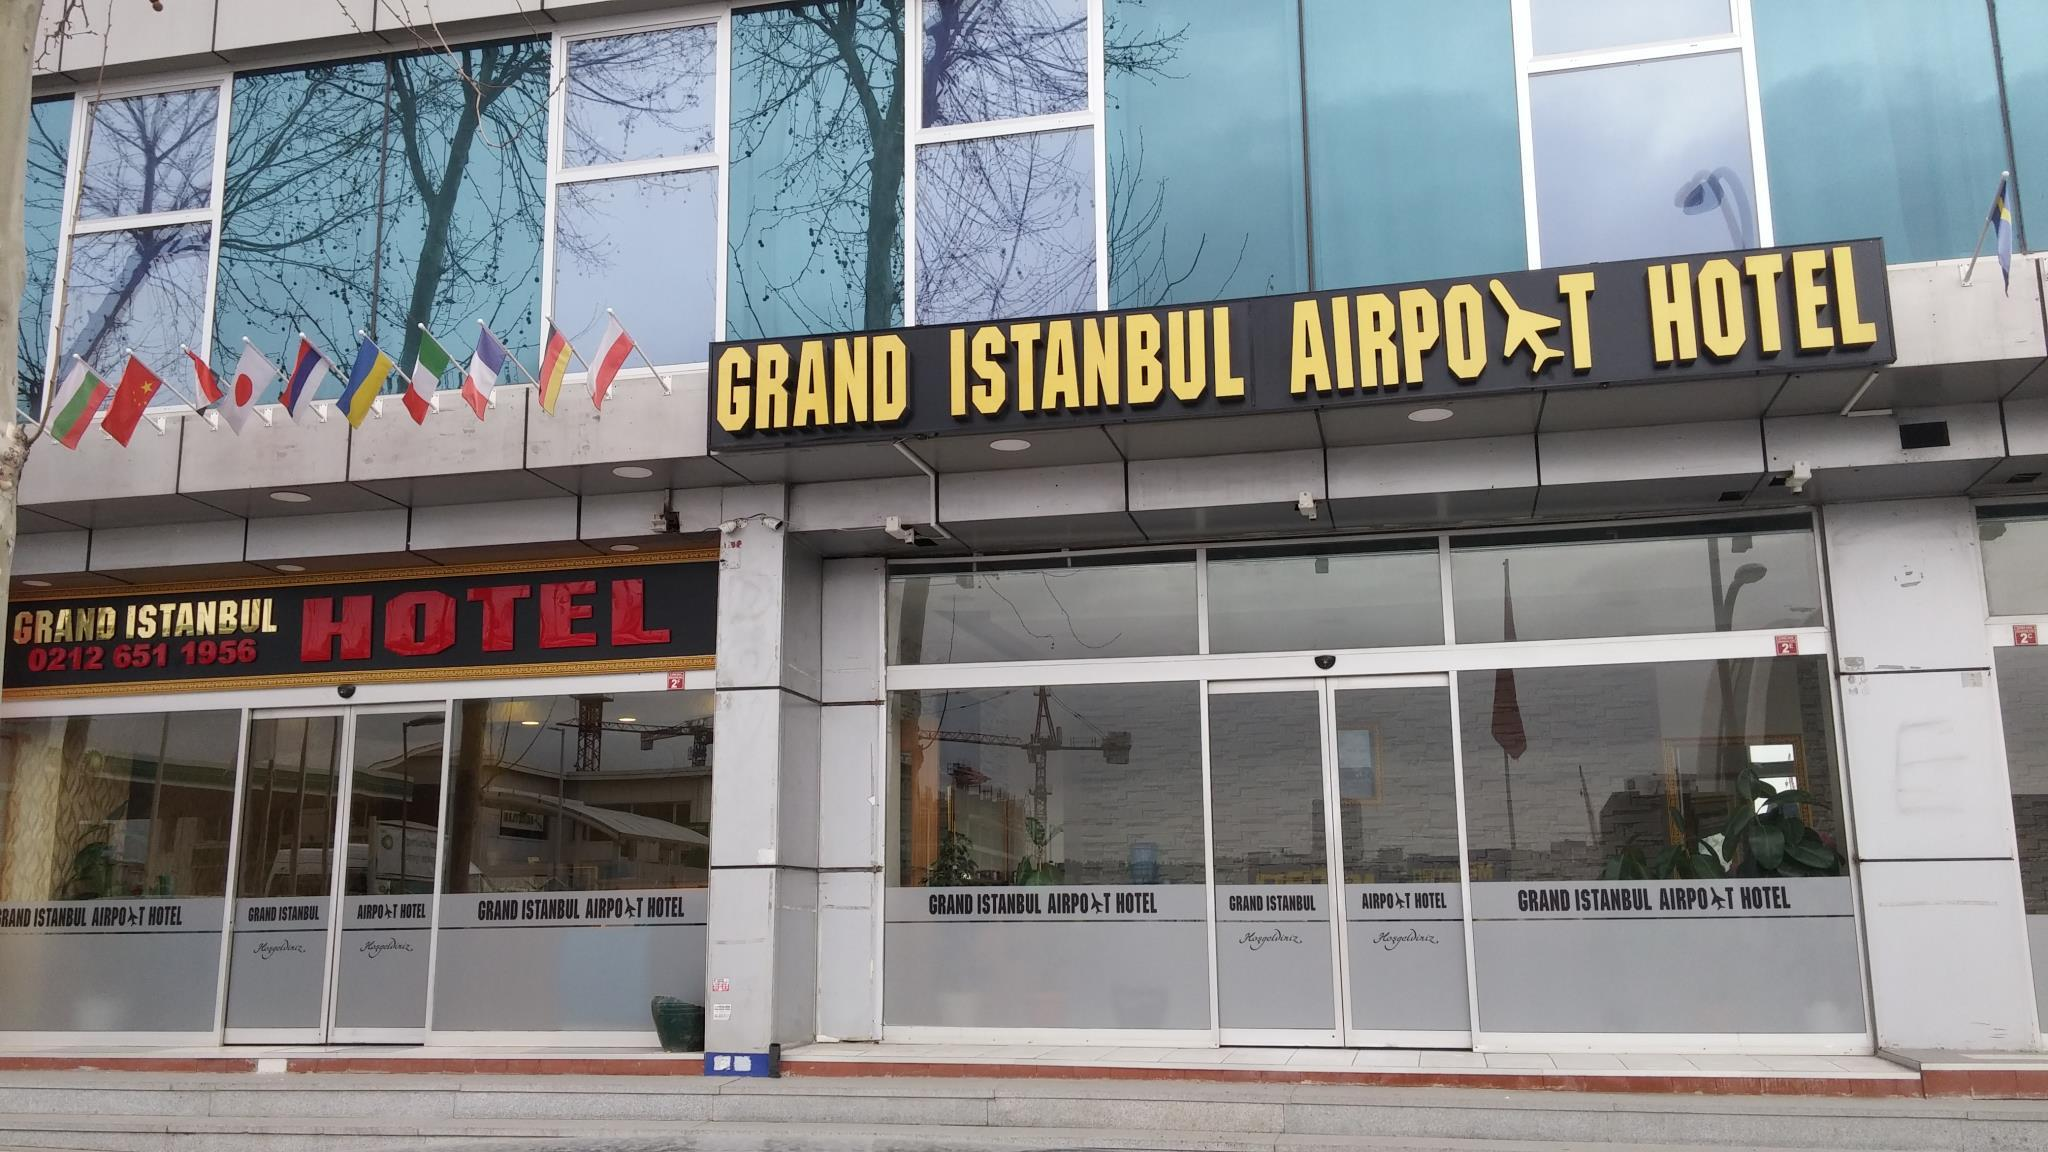 Hotel Grand Istanbul Airport